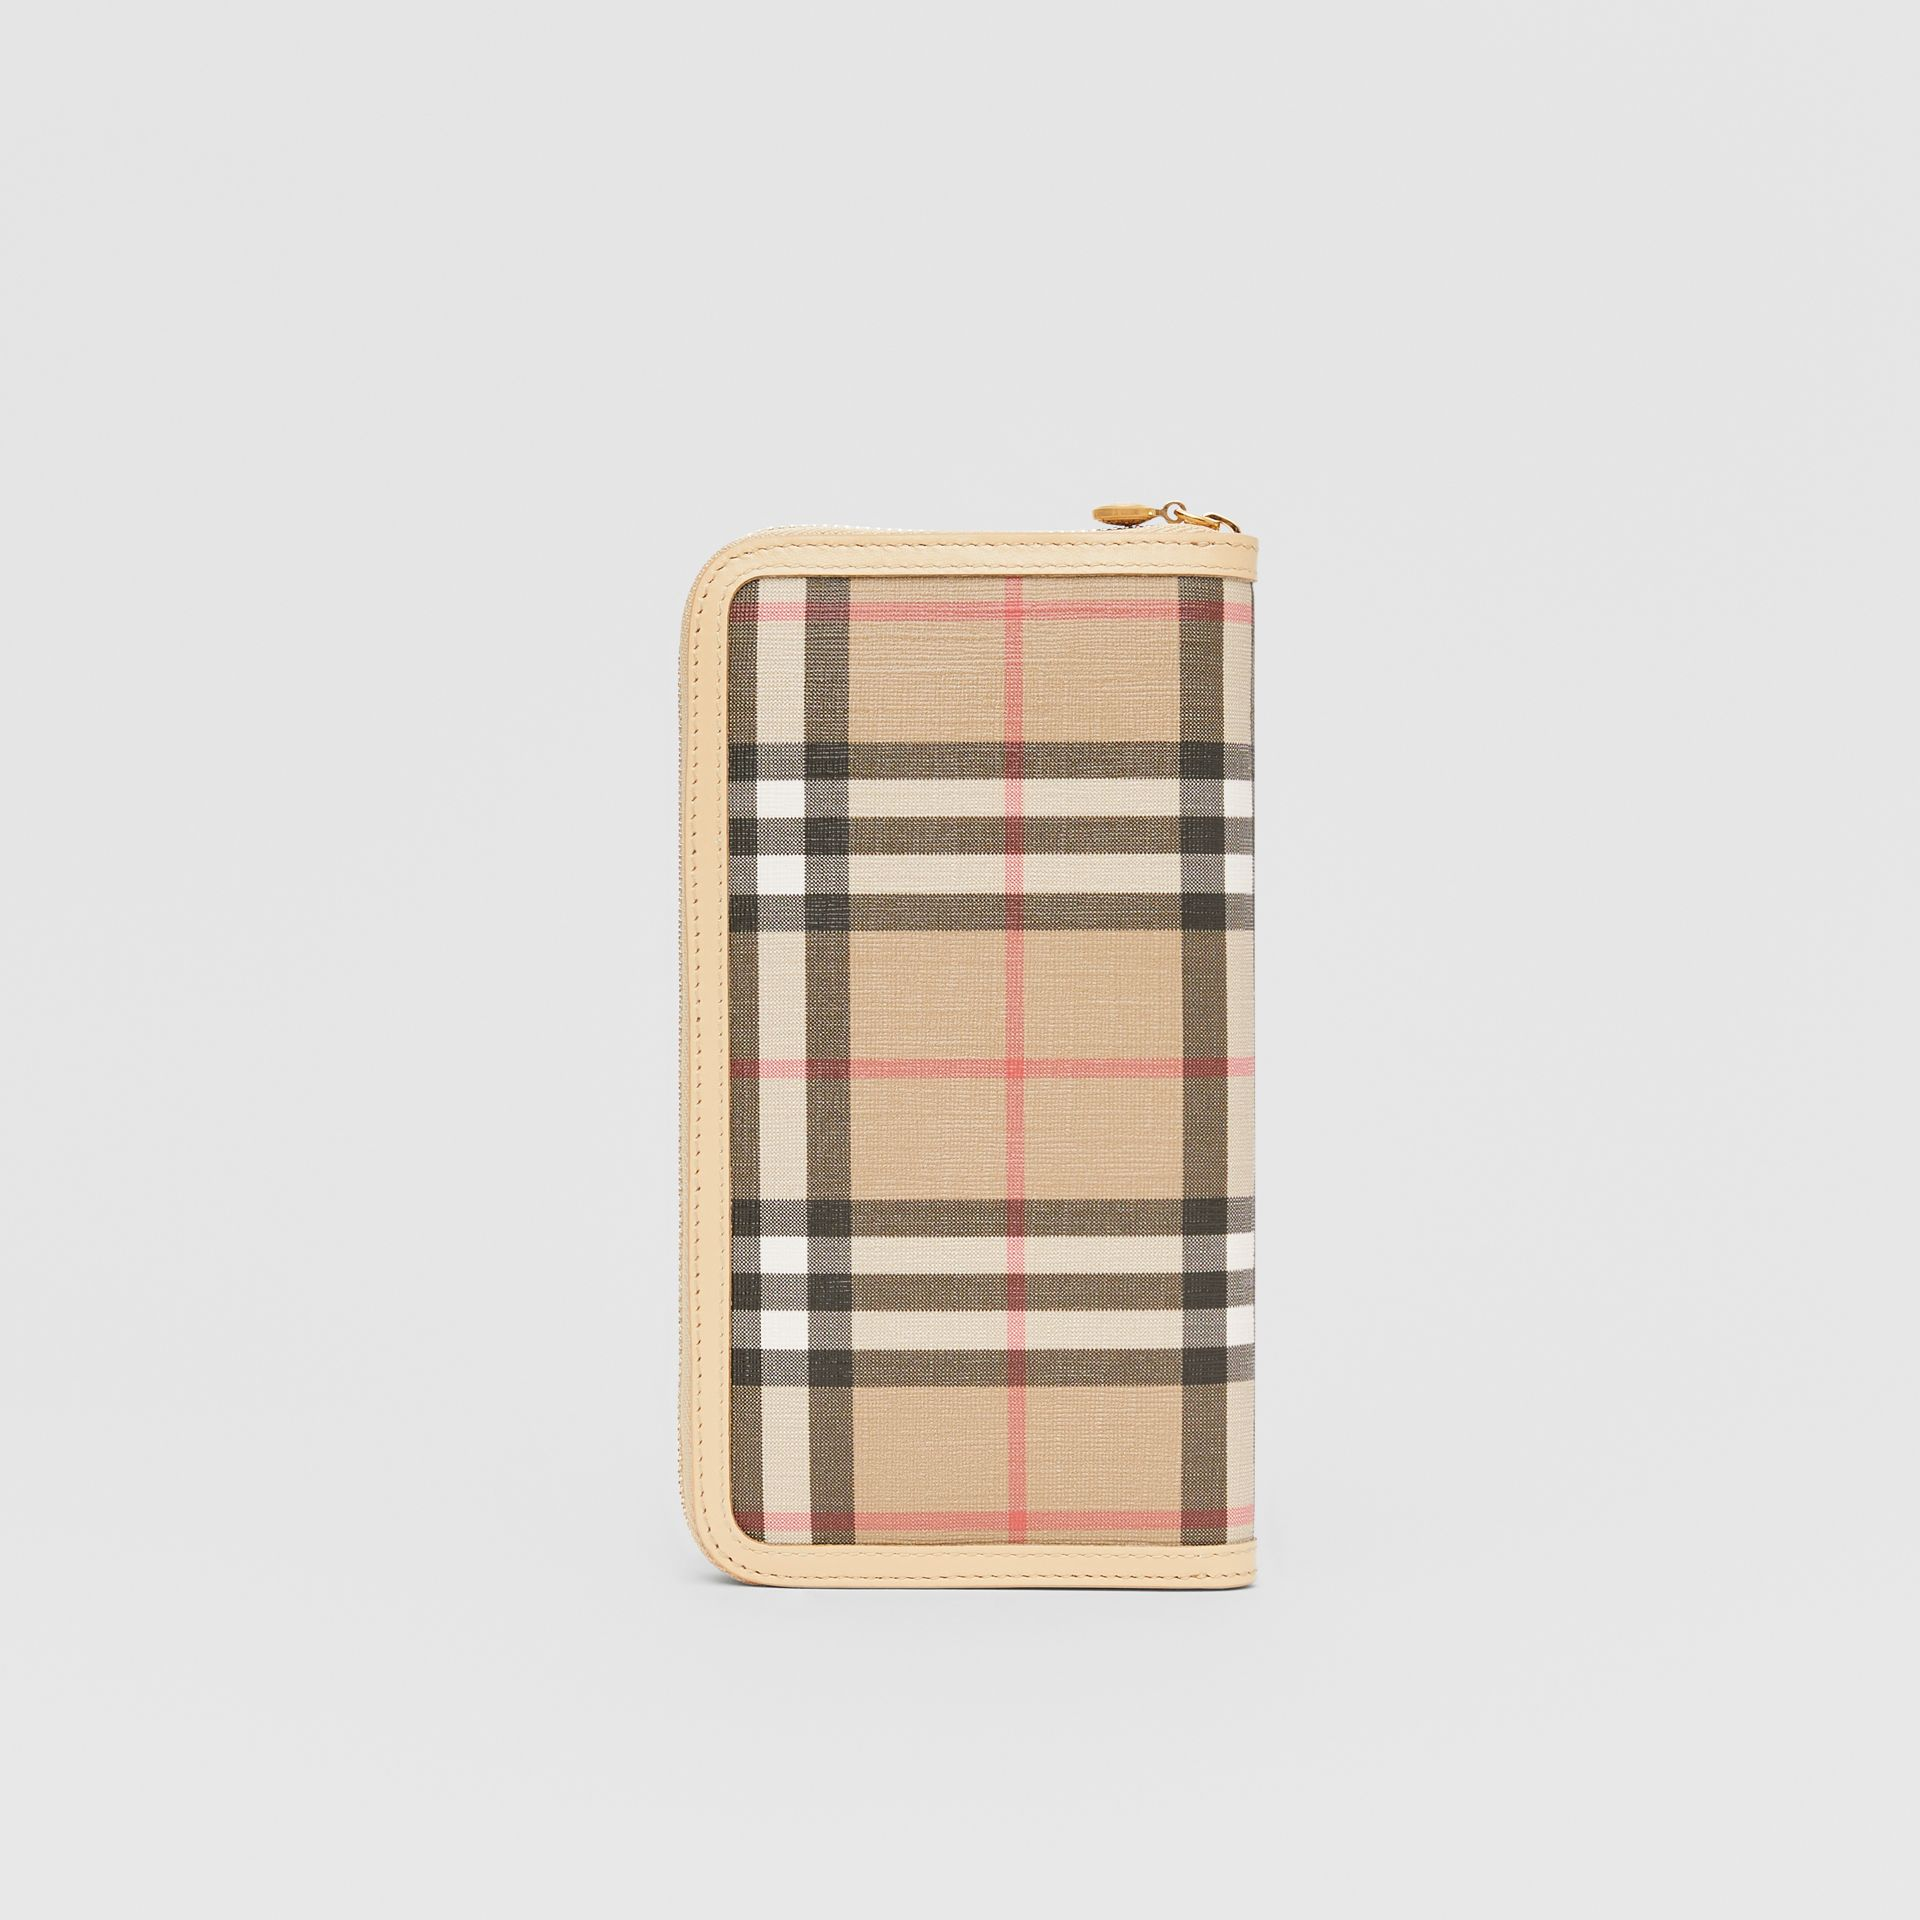 Vintage Check E-canvas and Leather Wallet in Beige - Women | Burberry Hong Kong S.A.R - gallery image 4